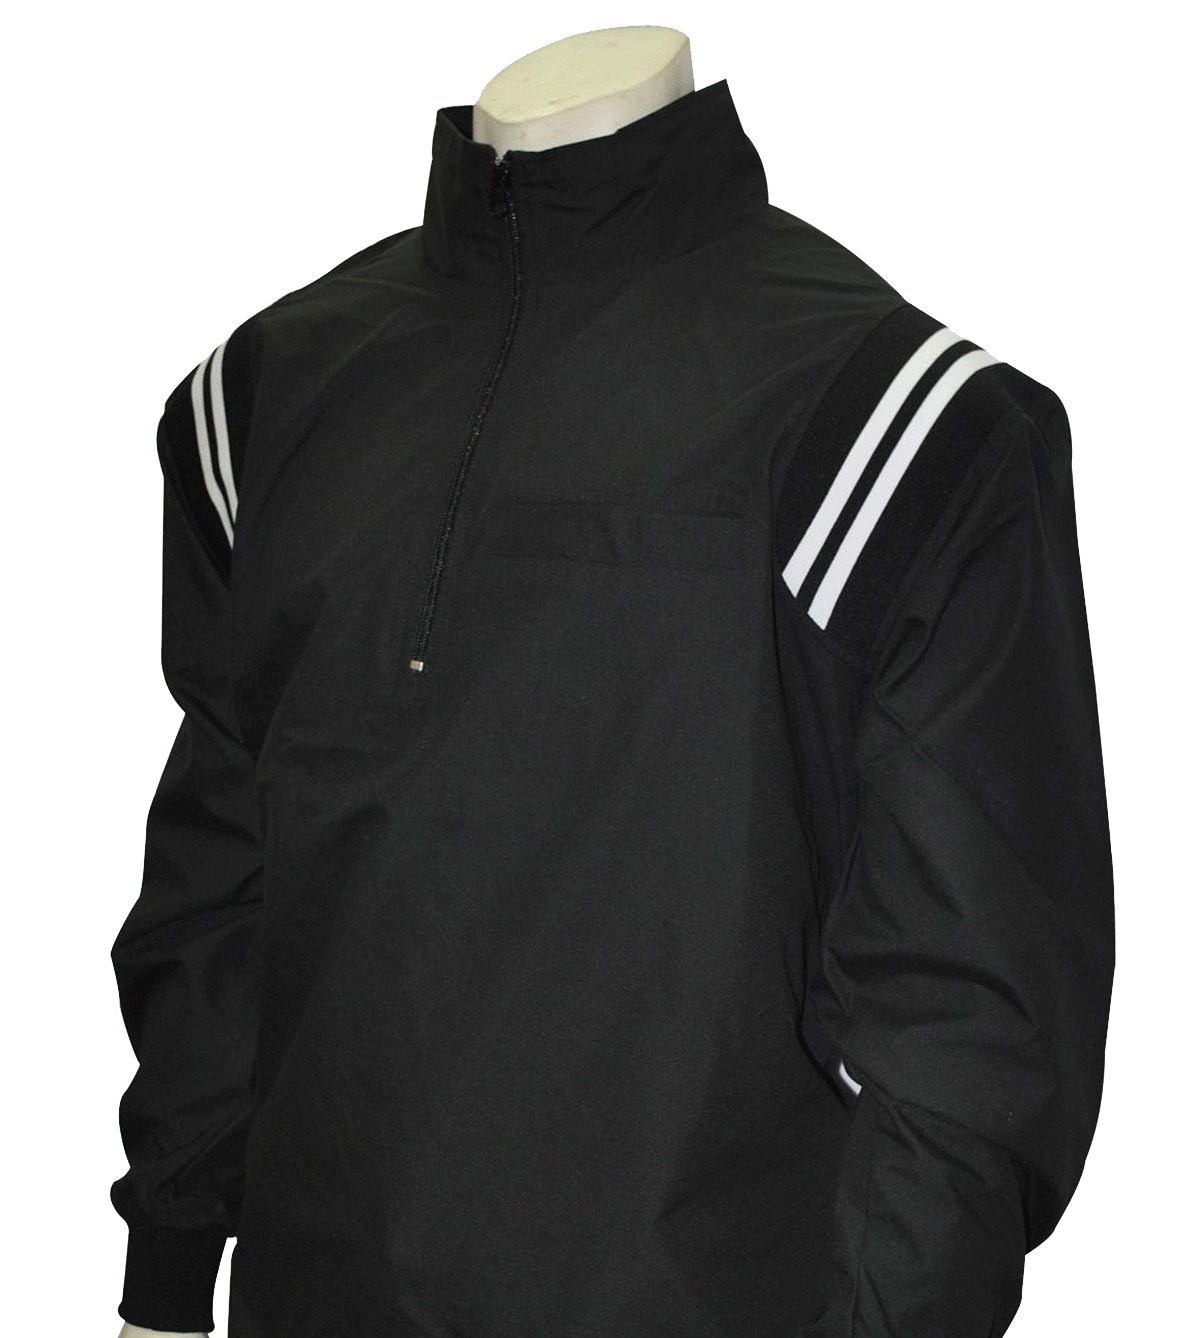 SMITTY 1/2 Sleeve Open Bottom Pullover Jacket